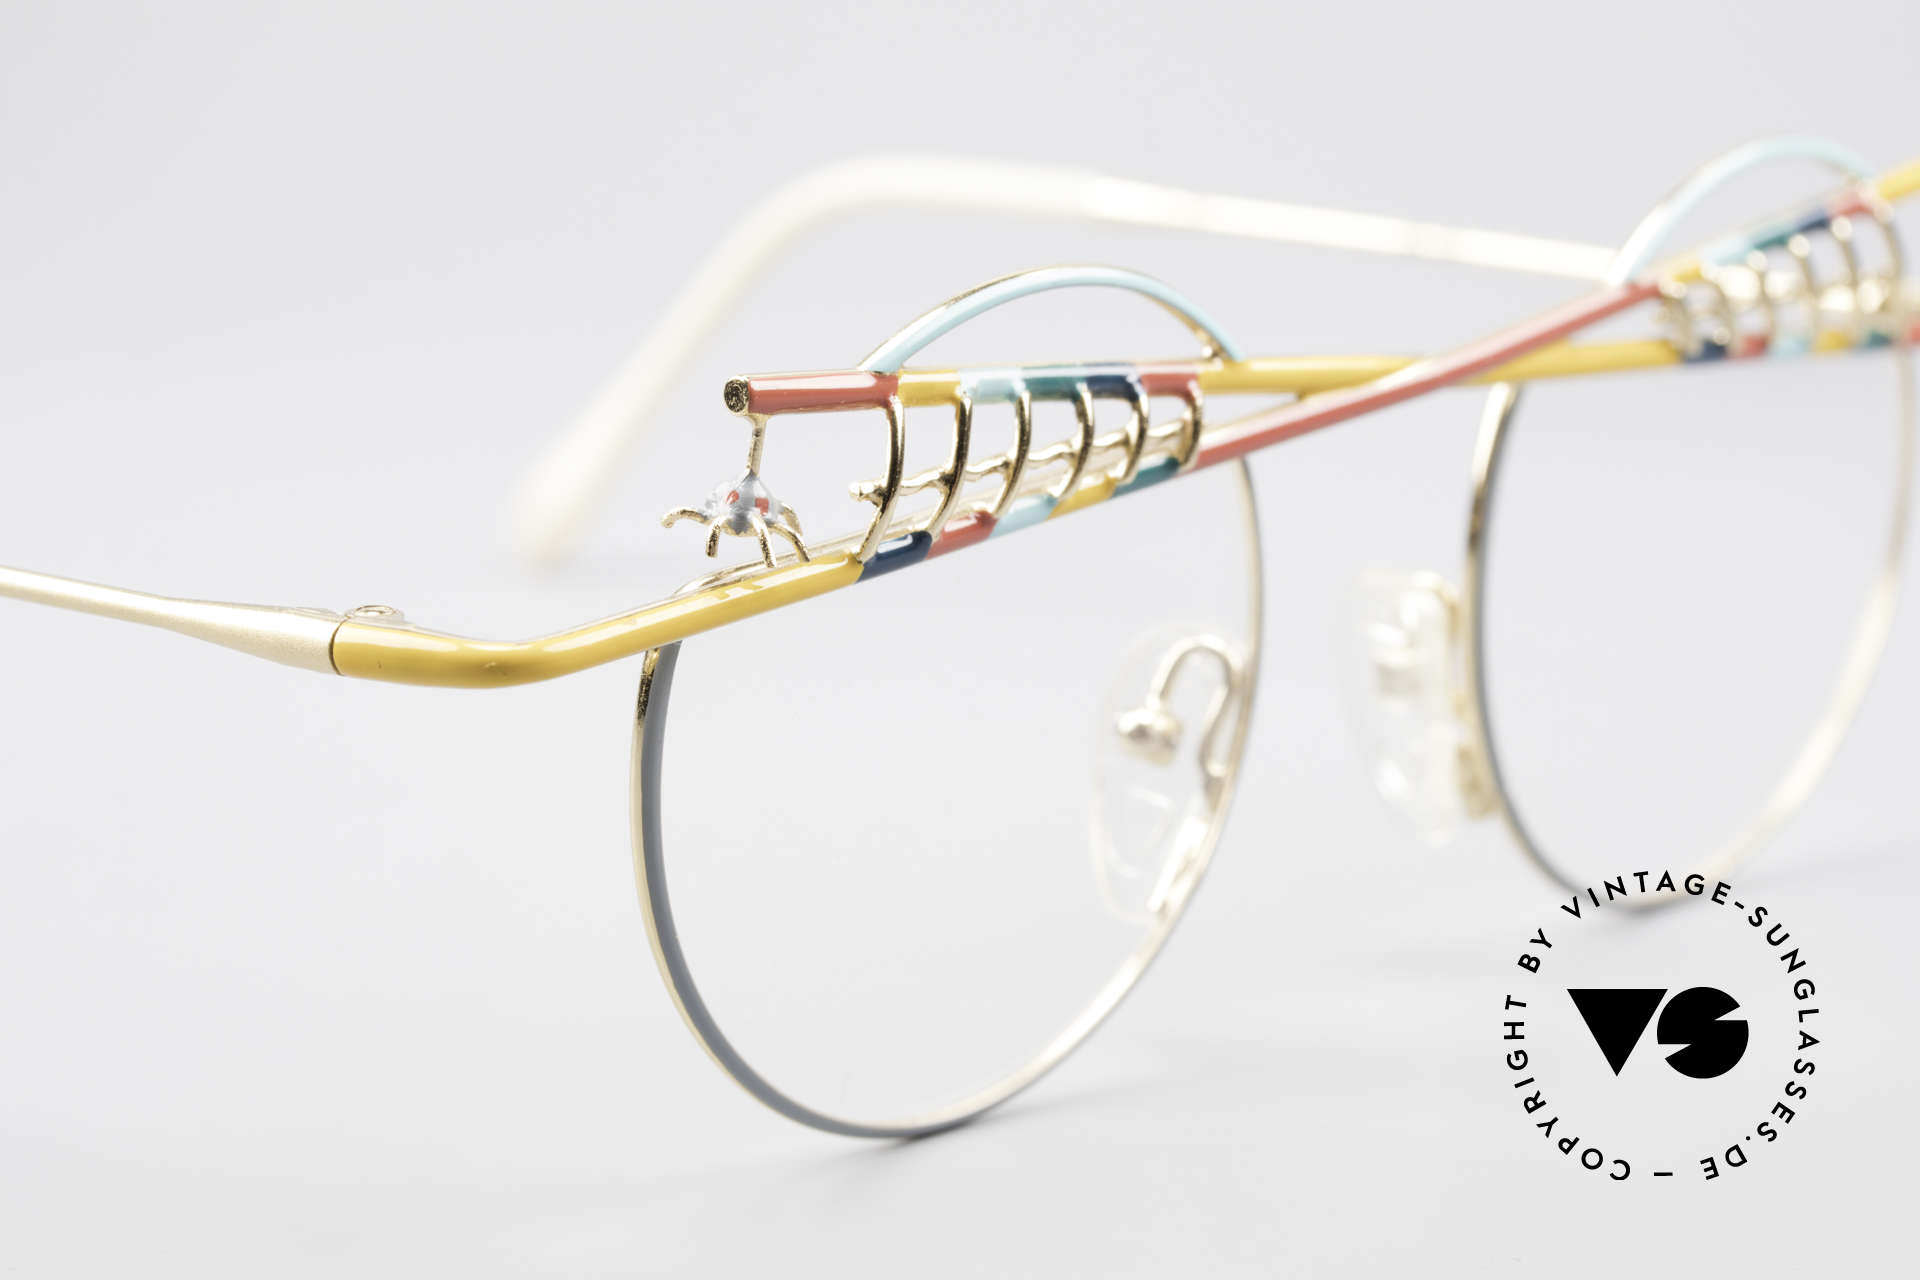 Taxi ST1 by Casanova The Jester Glasses Art Frame, unworn single piece (true collector's item); LIMITED!, Made for Men and Women